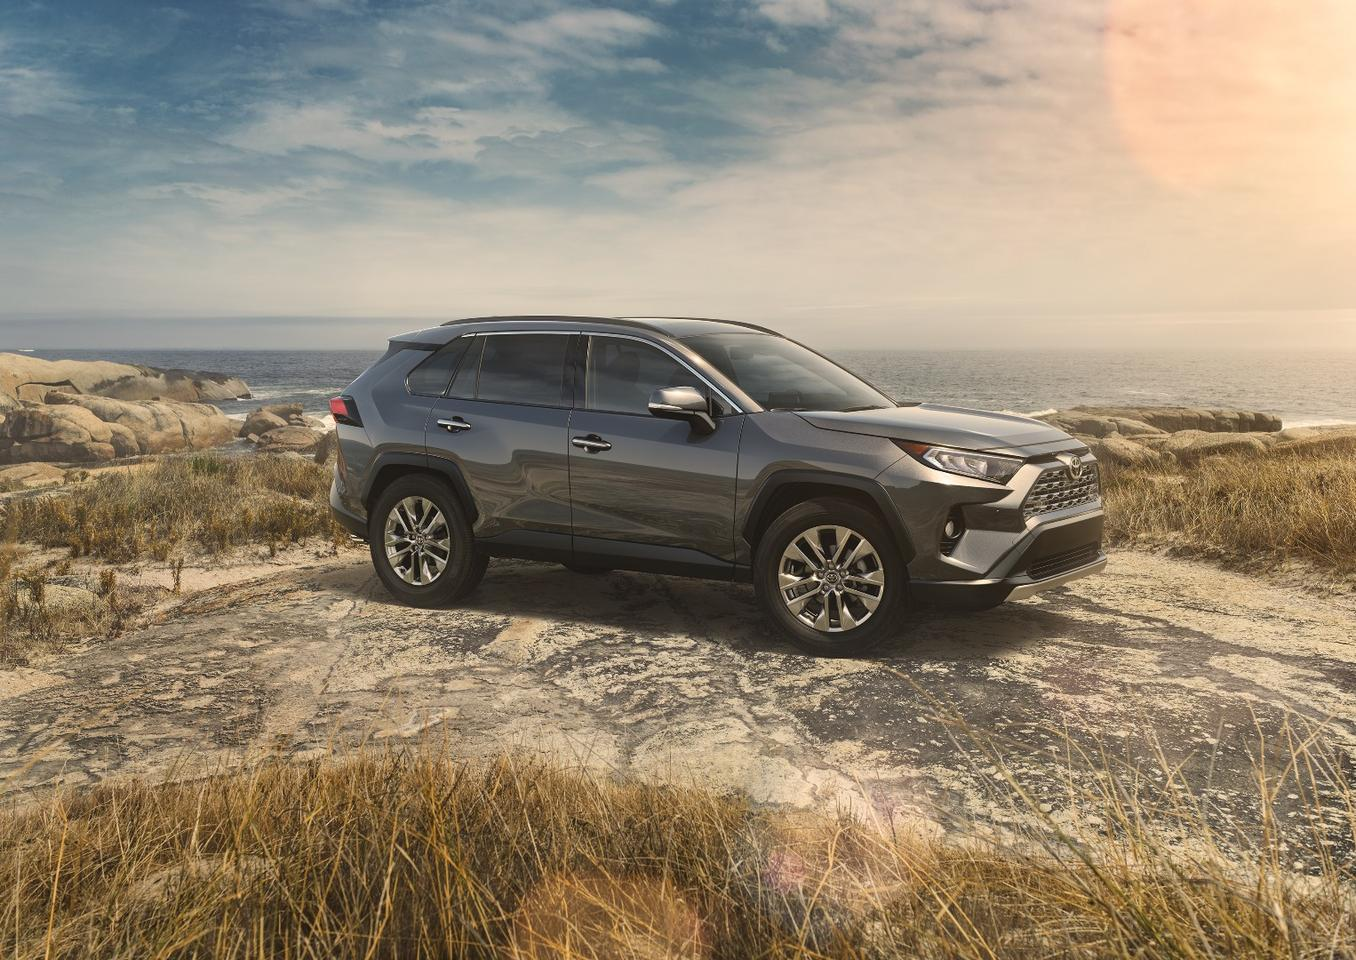 This new-generation RAV4 adds more engine power, while getting better fuel economy, and more off-road capability to its build